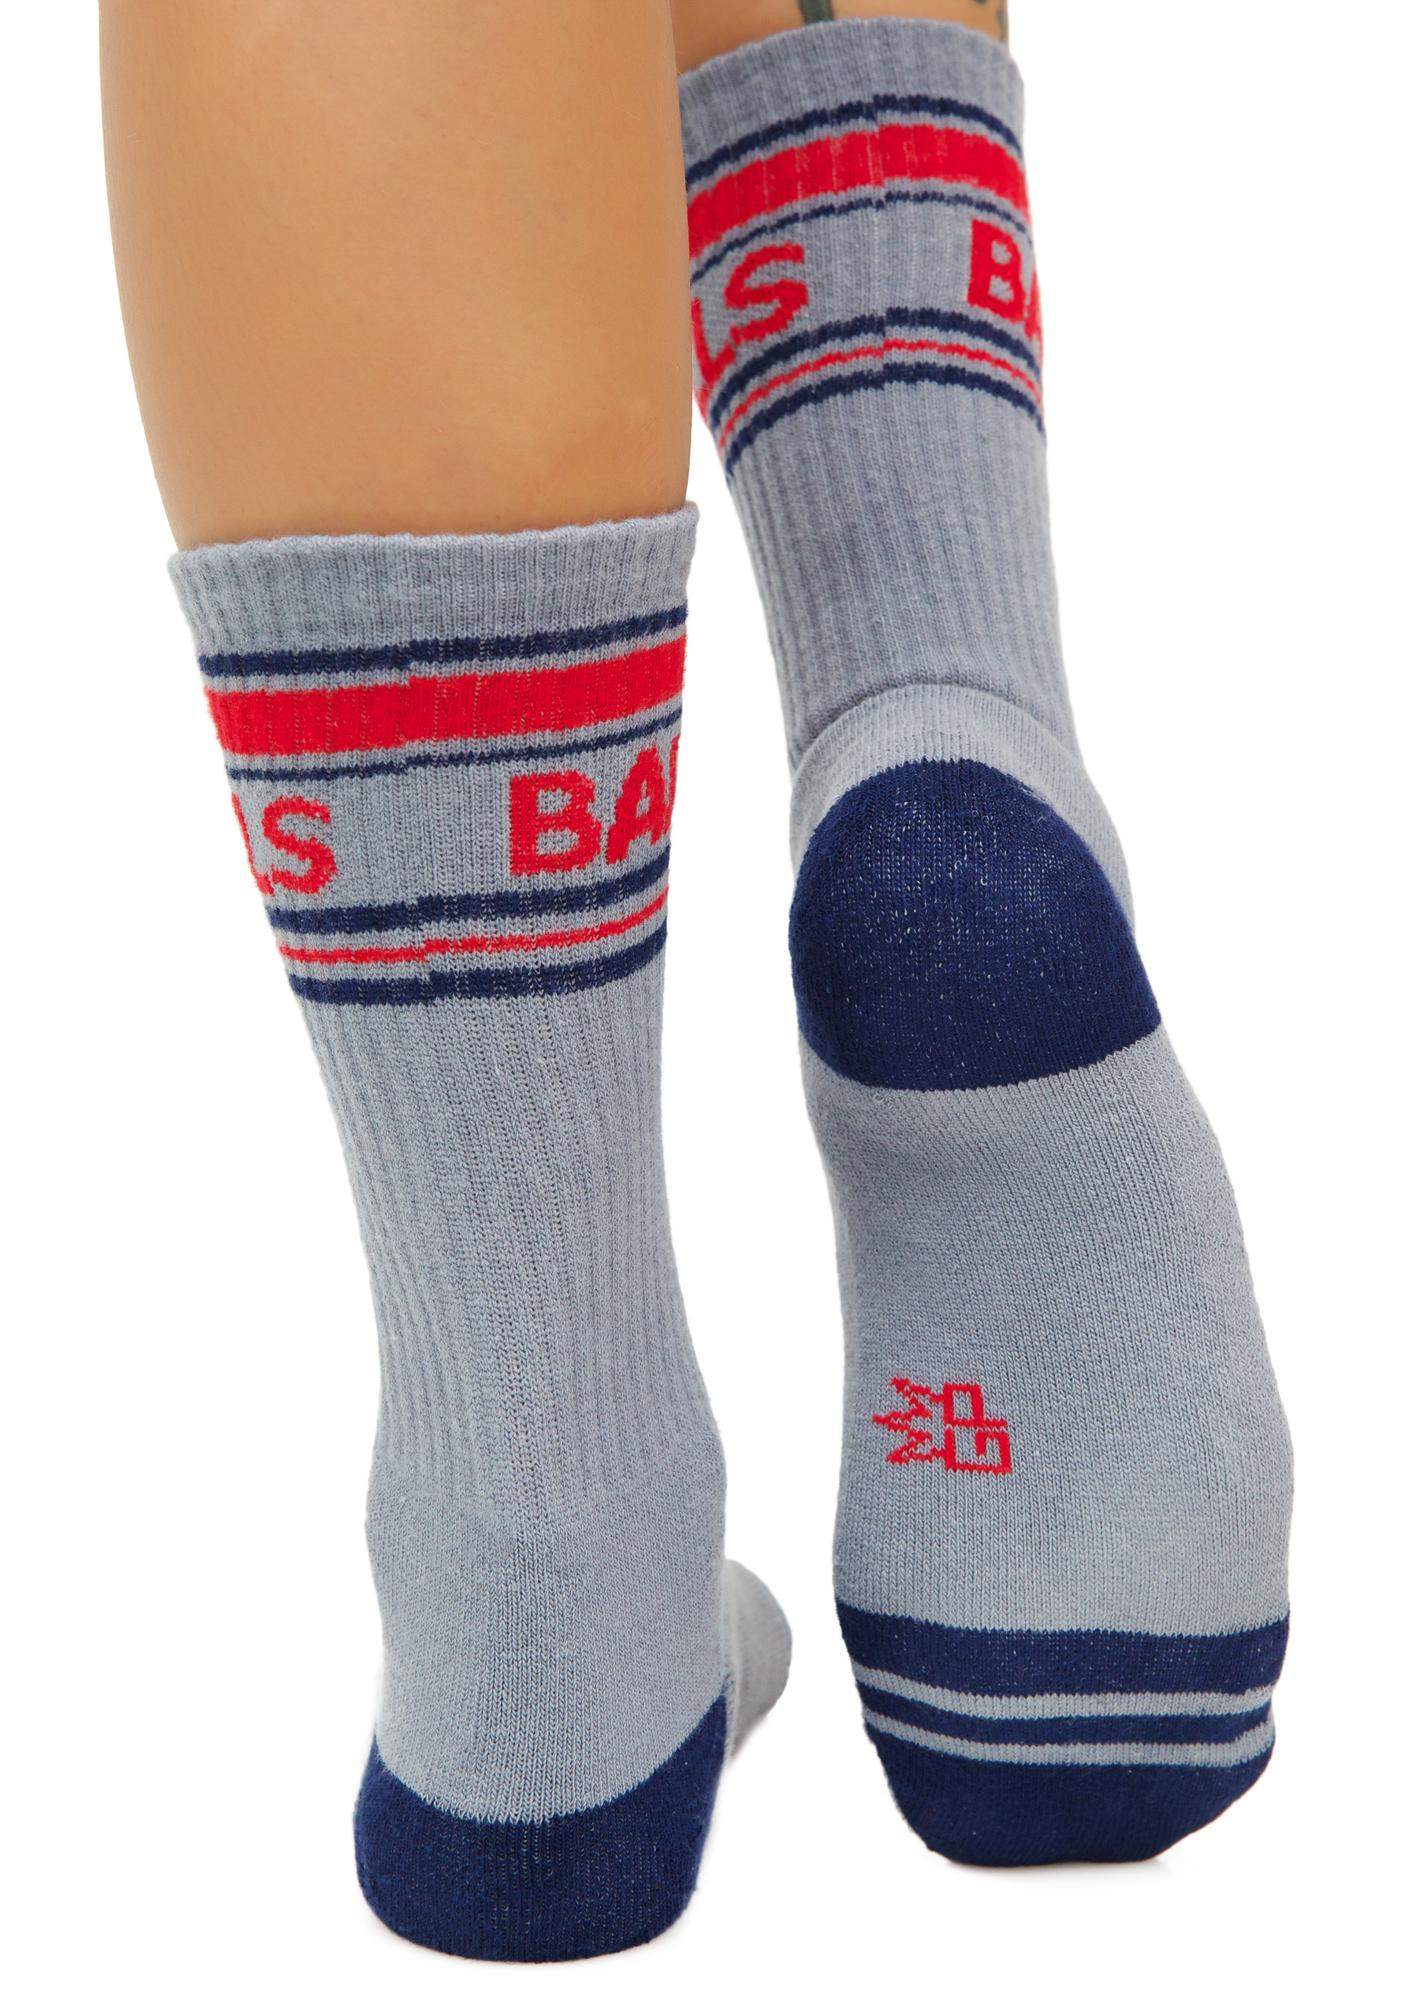 Gumball Poodle Balls Athletic Crew Socks